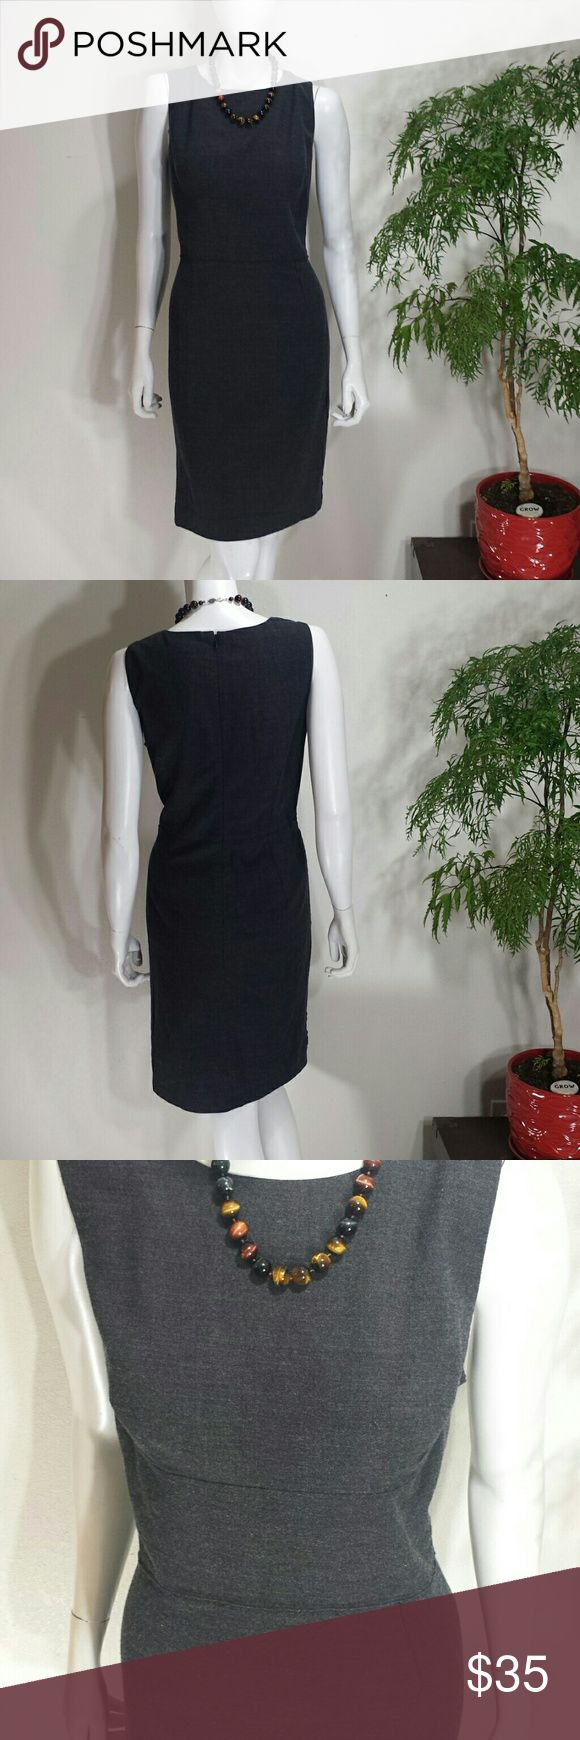 """Ann Taylor sz 12 Grey Wool Dress Size 12 Ann Taylor Dress Grey in color with revealed seams  Shell 71% wool  26% nylon 3% spandex   Lining 94% polyester 6% spandex  Approximate measurements when flat 18.5"""" armpit to armpit 39"""" shoulder to hem 17.5"""" waist  8"""" armpit to waist  22"""" waist to hem Ann Taylor Dresses Midi"""